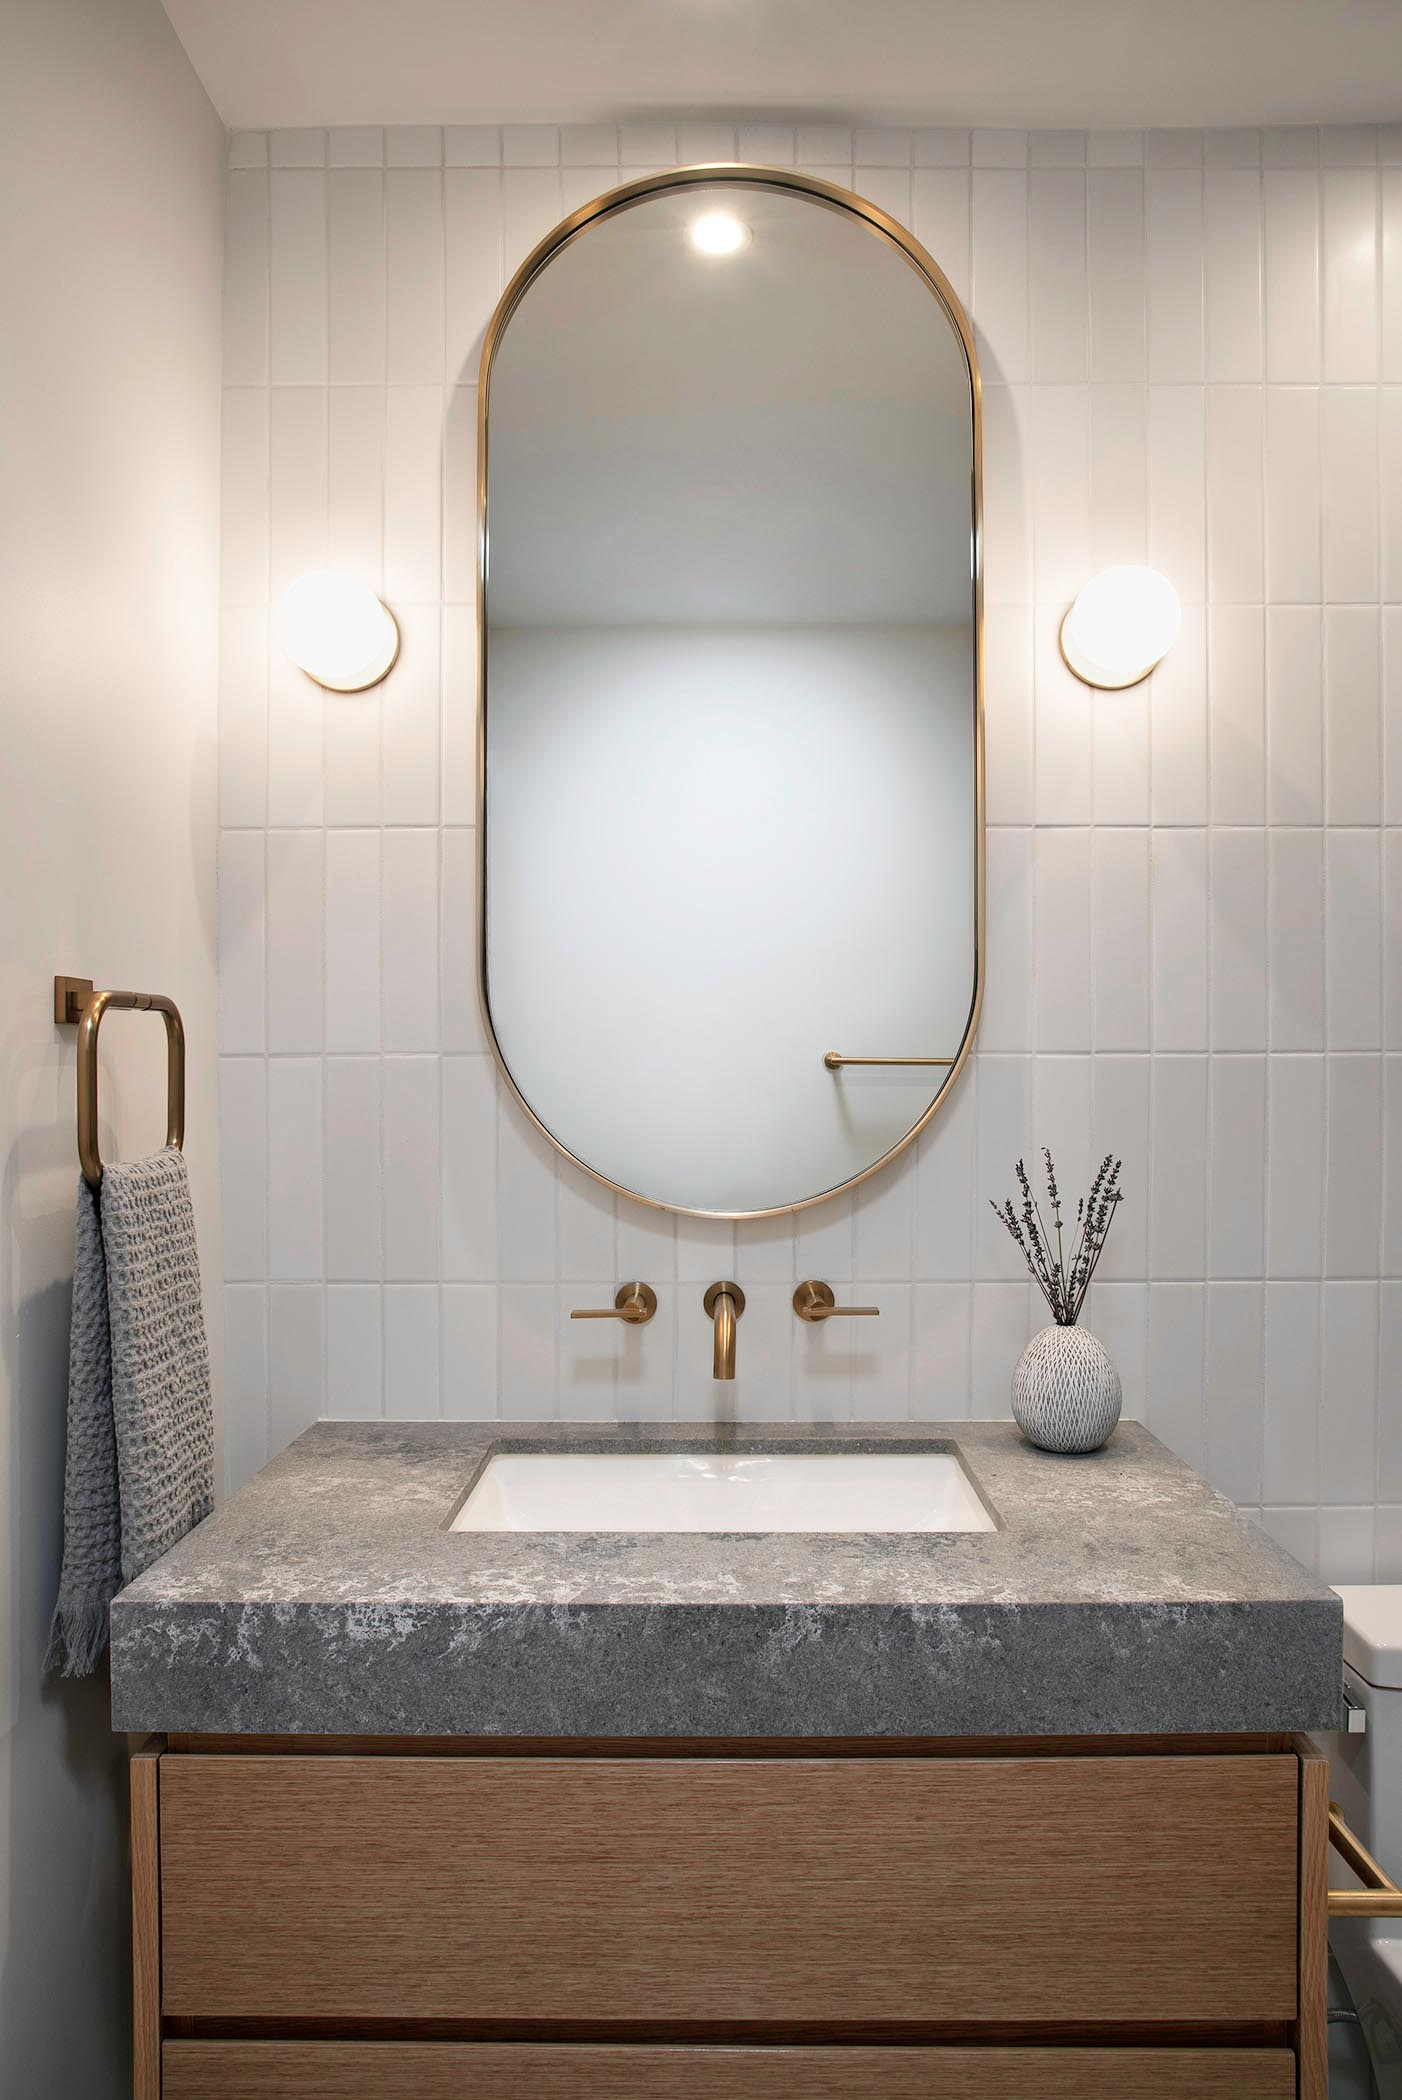 In this bathroom, there's a custom pill-shaped mirror flanked by specialty wall sconces, that hangs above a wood vanity with a grey countertop and white undermount sink.